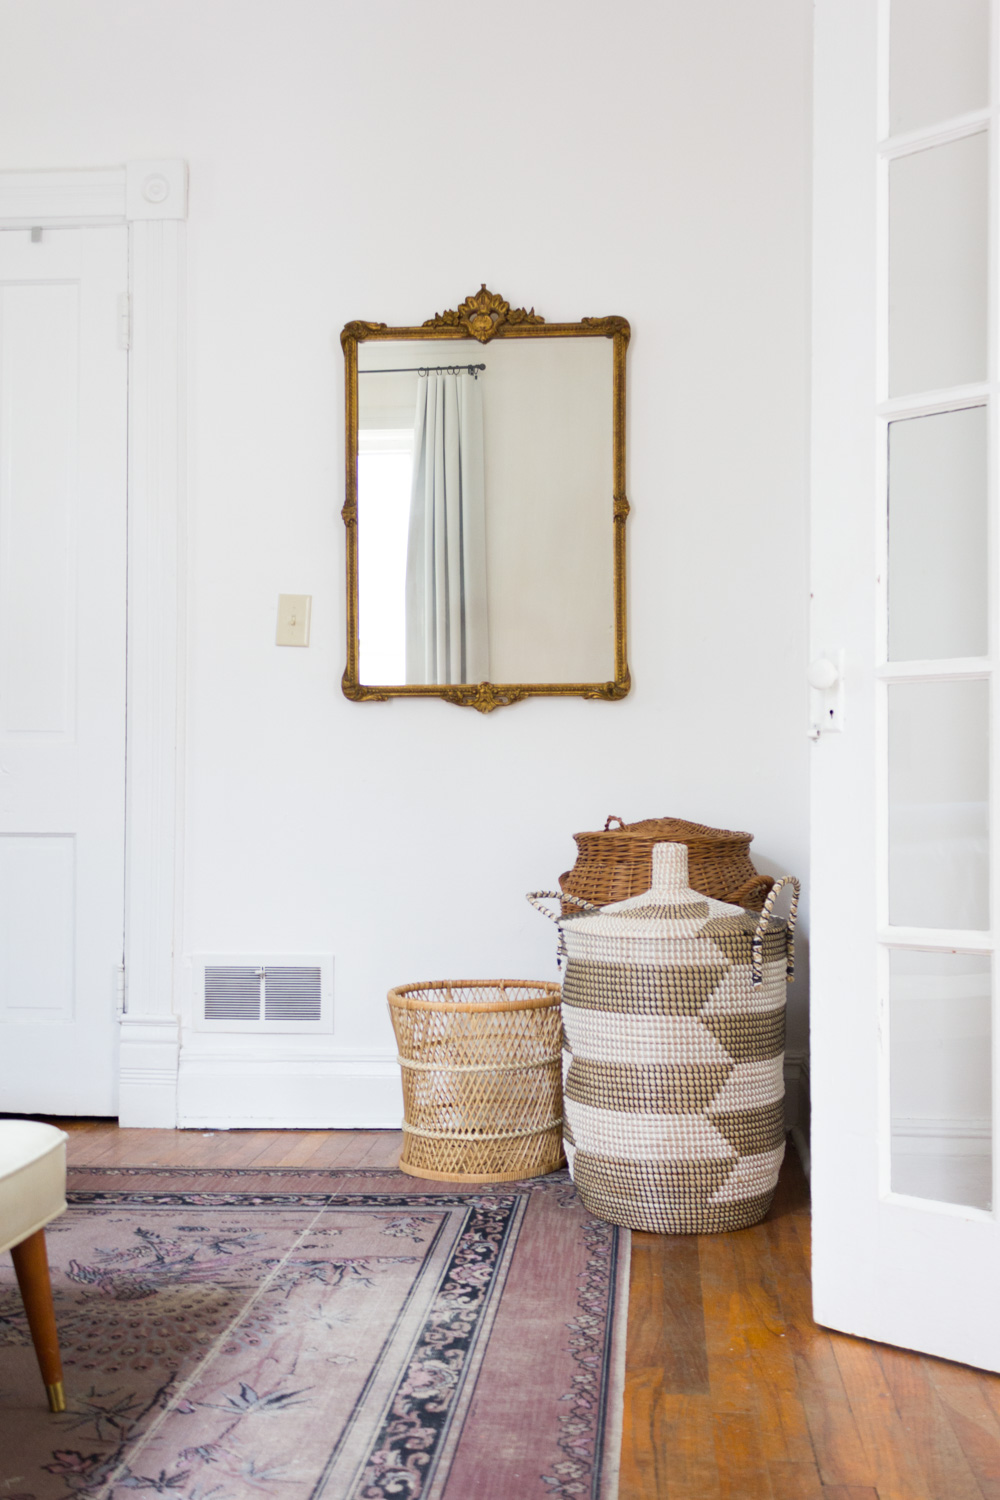 Antique Mirror and Bohemian Baskets in Bedroom